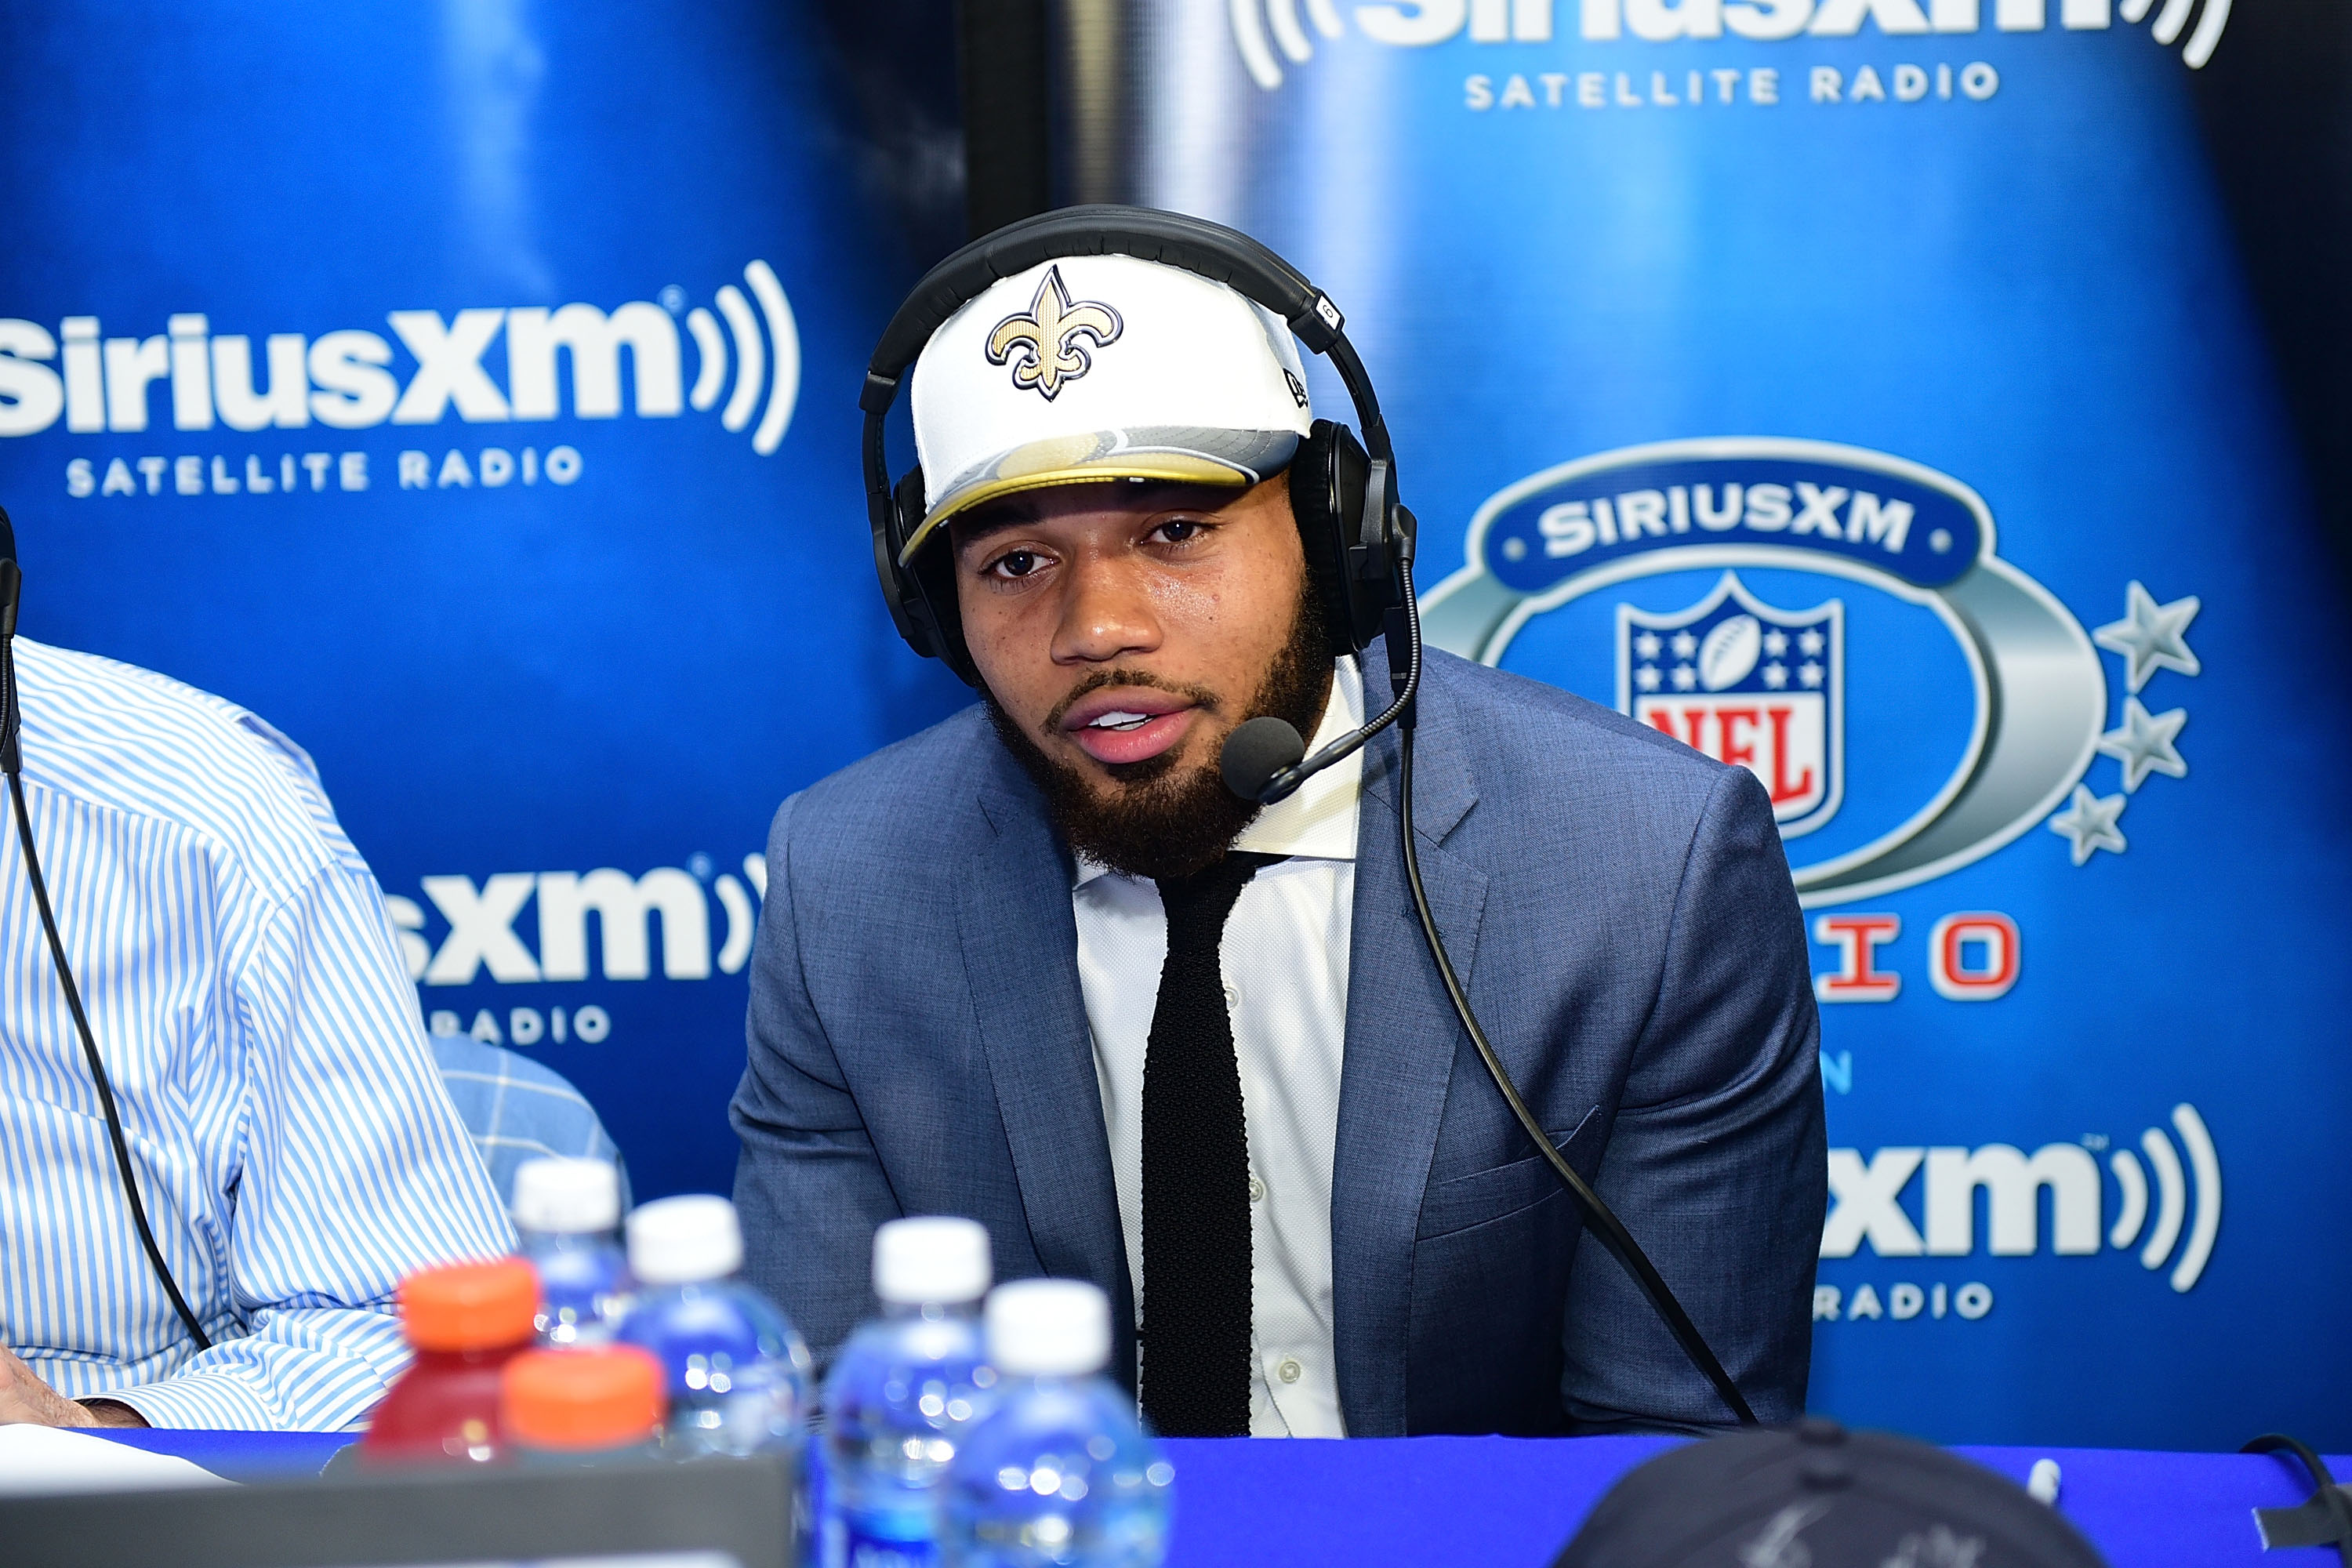 PHILADELPHIA, PA - New Orleans Saints cornerback Marshon Lattimore visits the SiriusXM NFL Radio talkshow after being selected with the 11th overall pick during the 2017 NFL Draft at the Philadelphia Museum of Art.